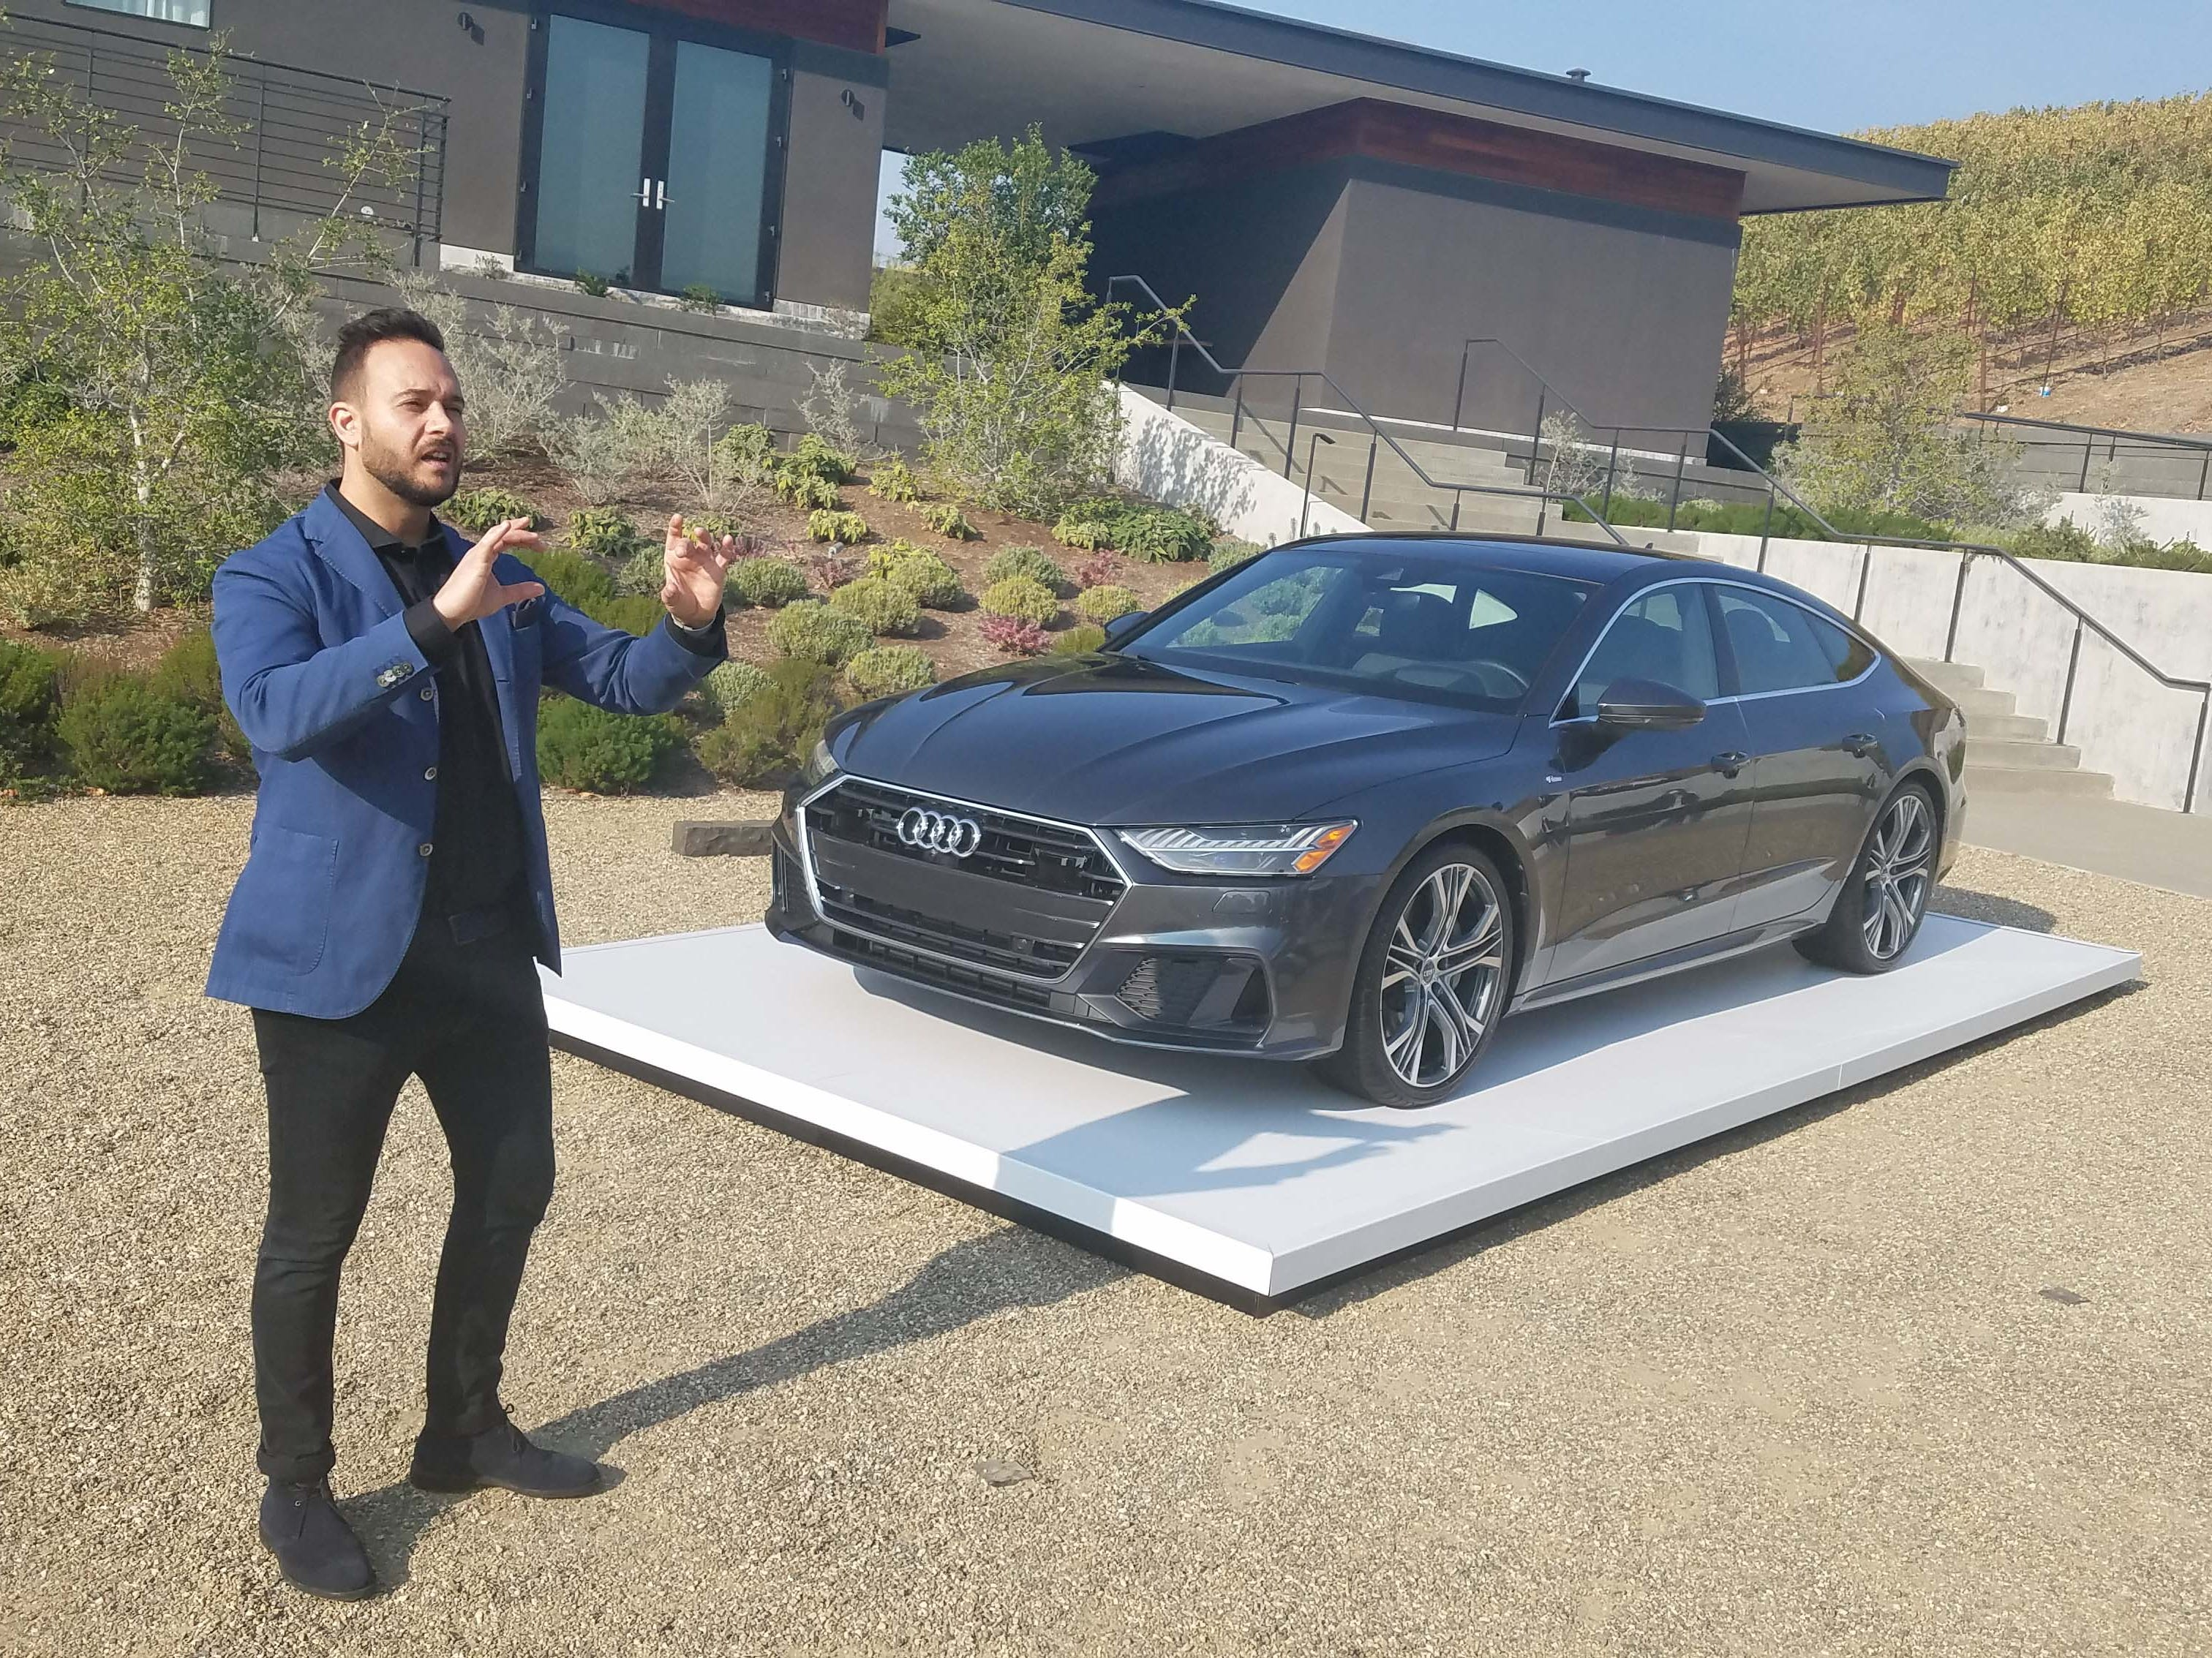 Audi A7 designer Sebastiano Russo, 36, penned the second generation of the iconic sportback sedan. In Napa Valley he gives a tour of his masterpiece.